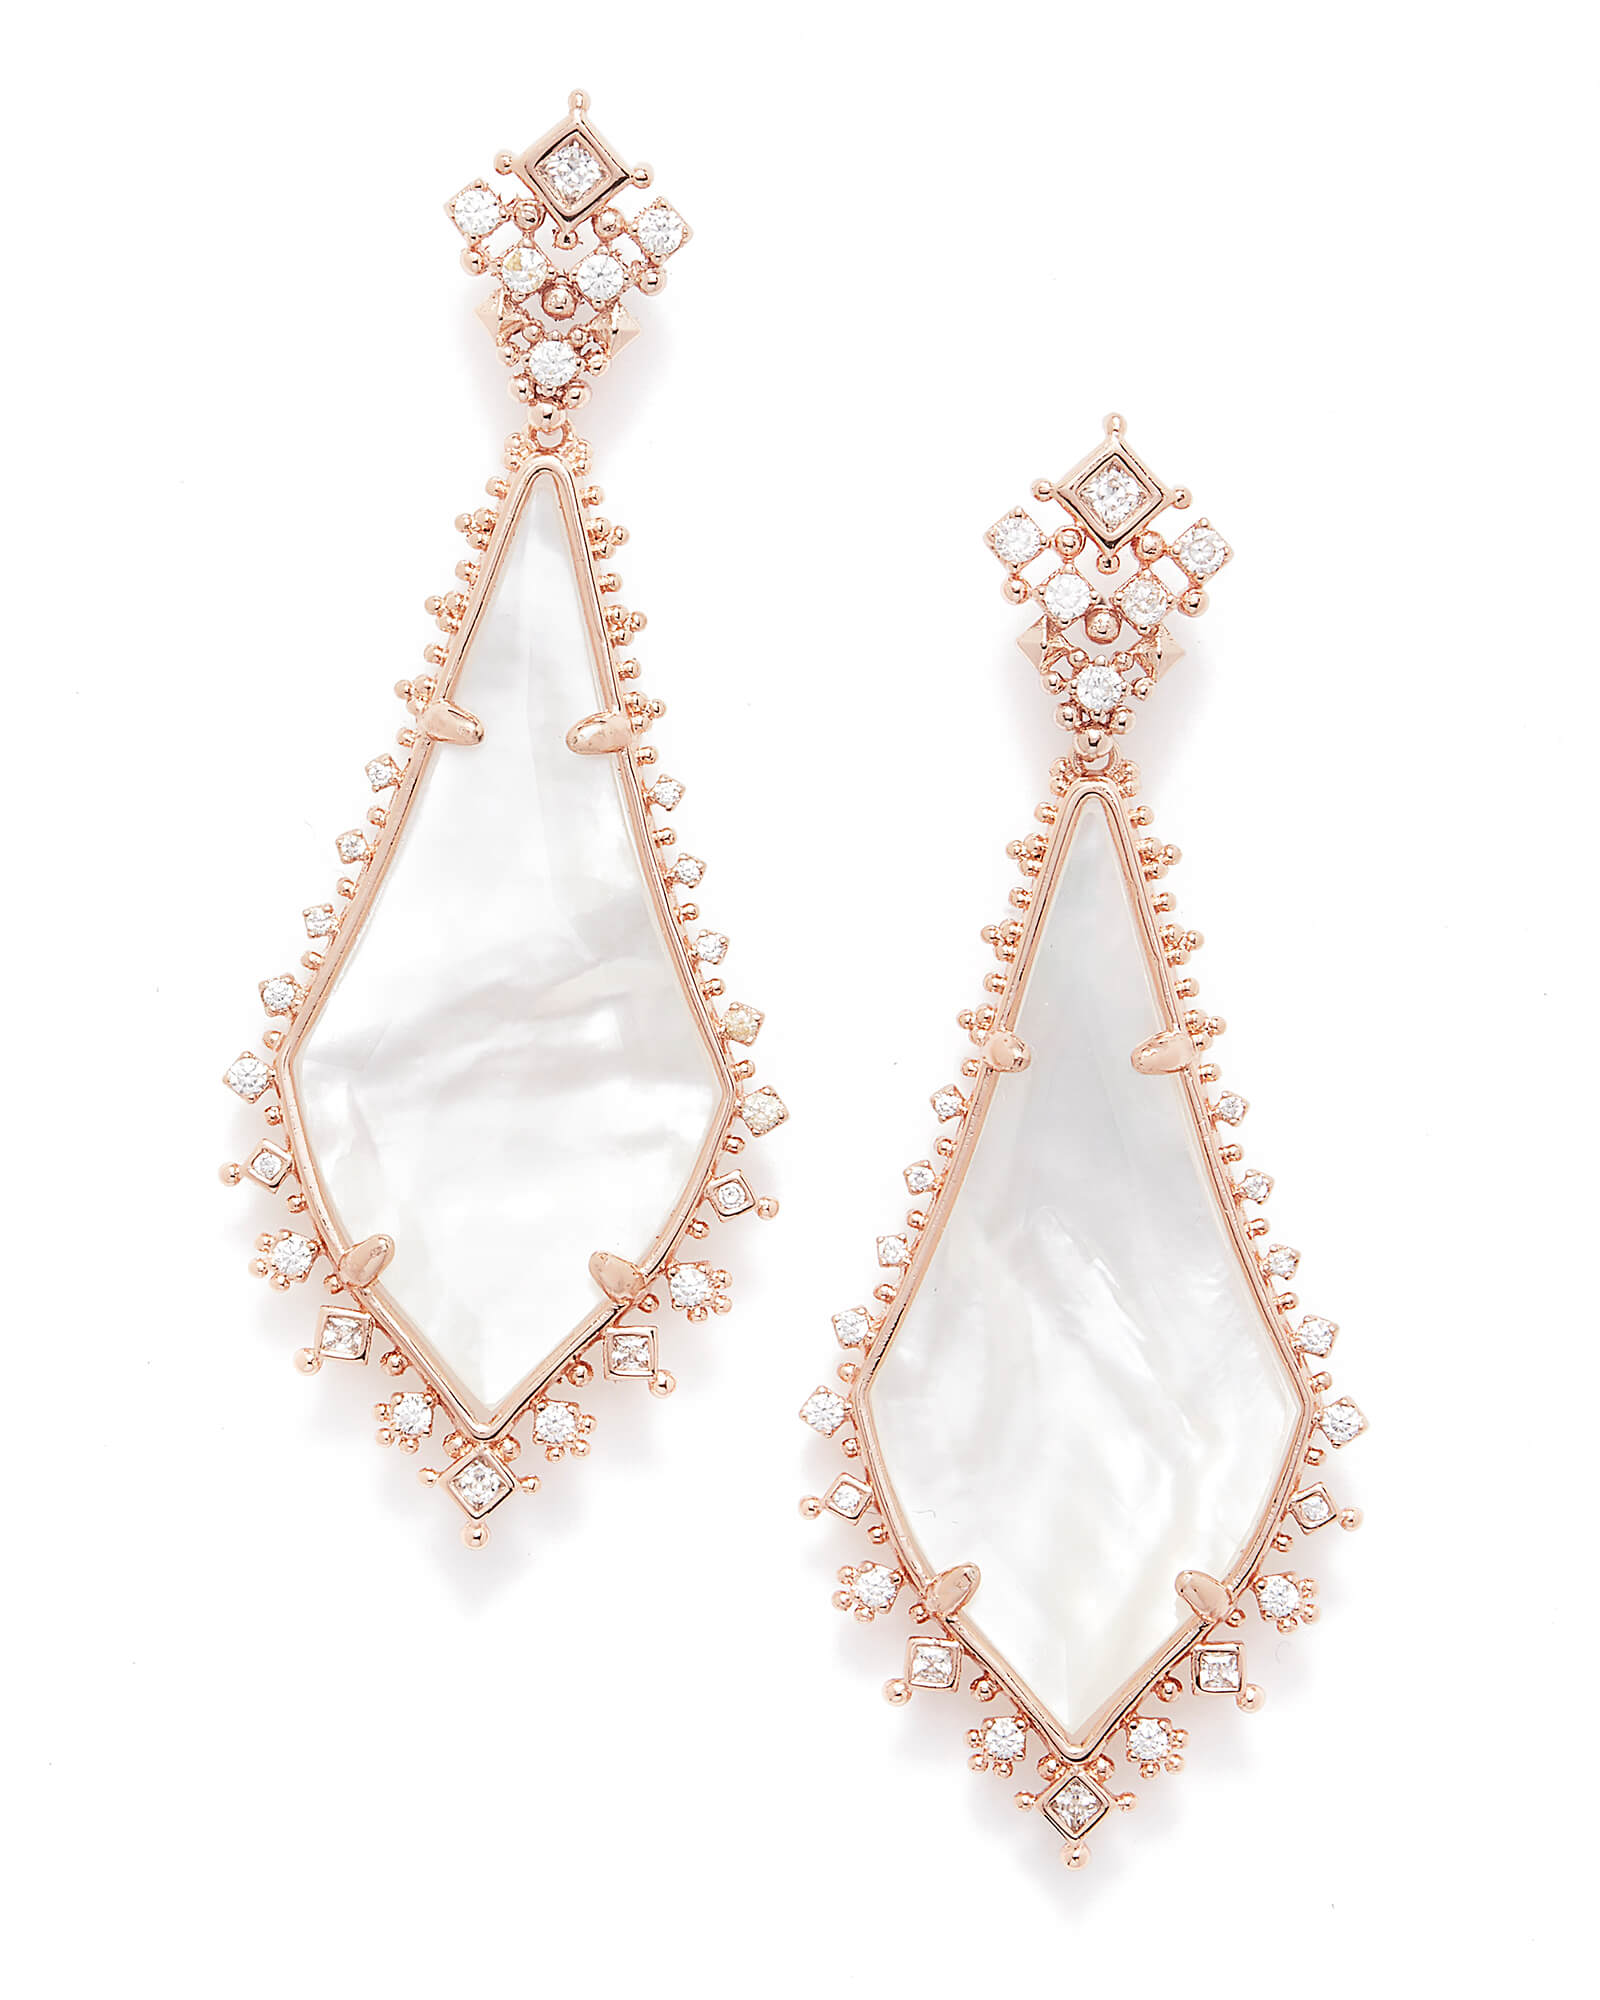 Martha Statement Earrings in Rose Gold